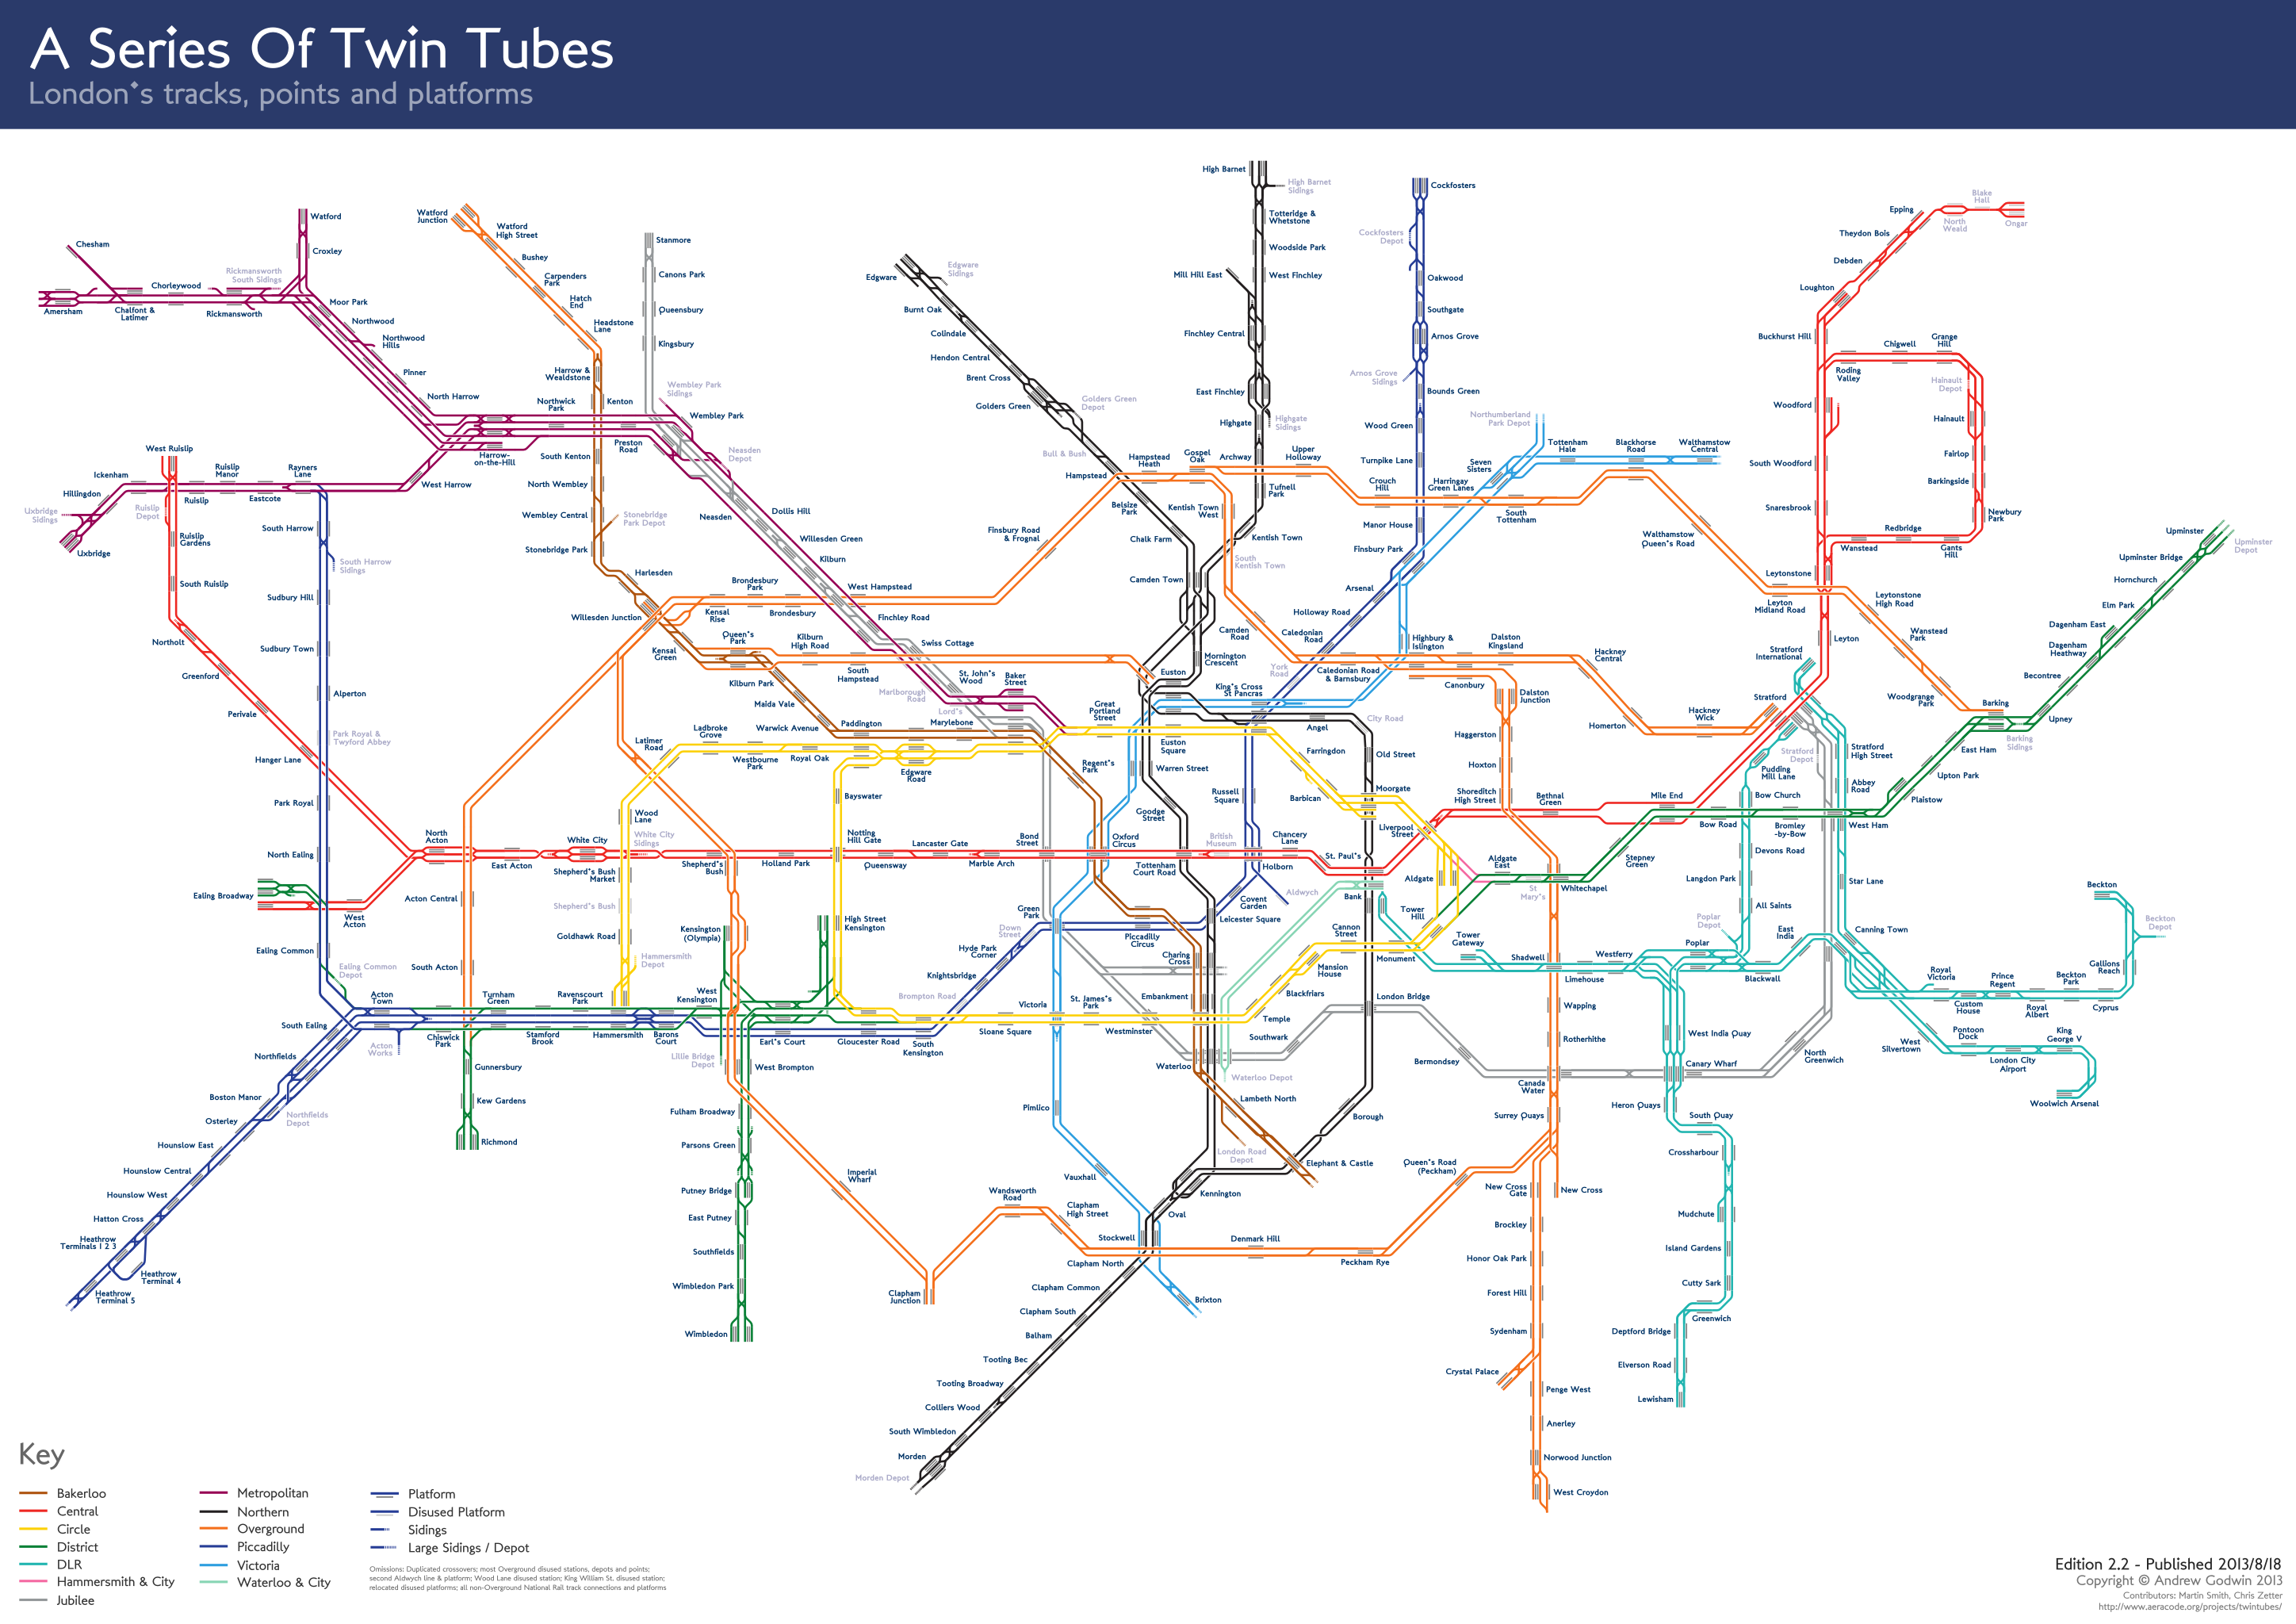 A Guide To Alternative London Tube Maps Londonist - London map pdf 2015